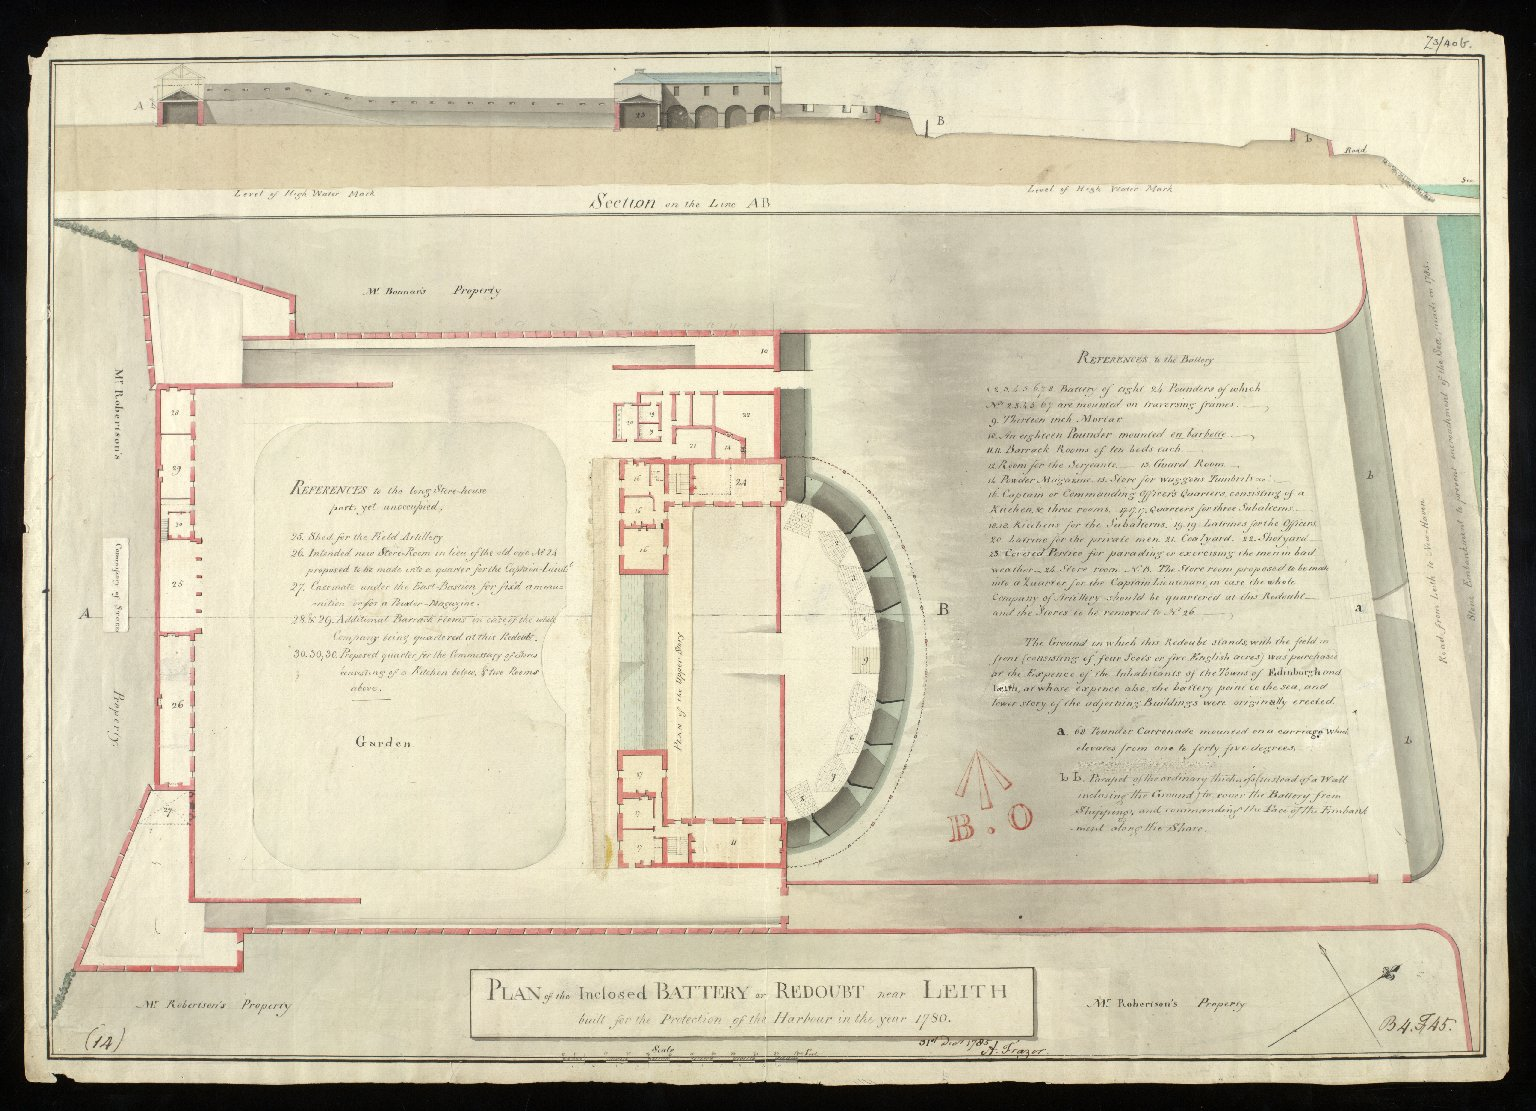 Plan of the inclosed battery or redoubt near Leith : built for the protection of the harbour in the year 1780 [1 of 2]